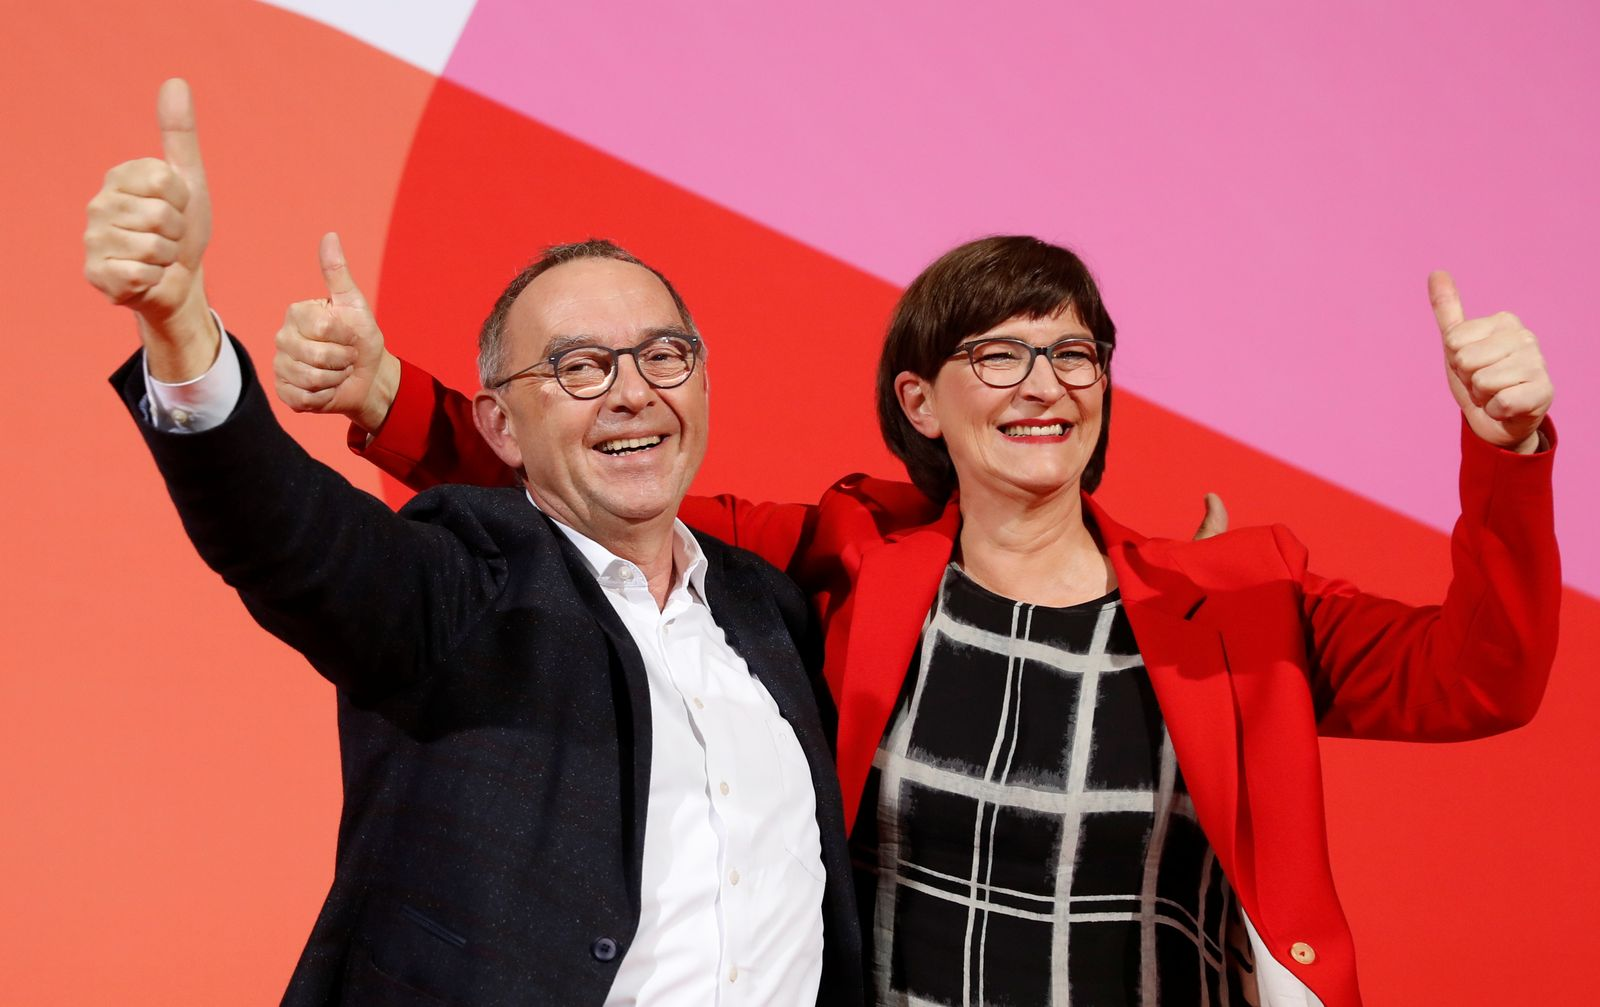 GERMANY-POLITICS/SPD